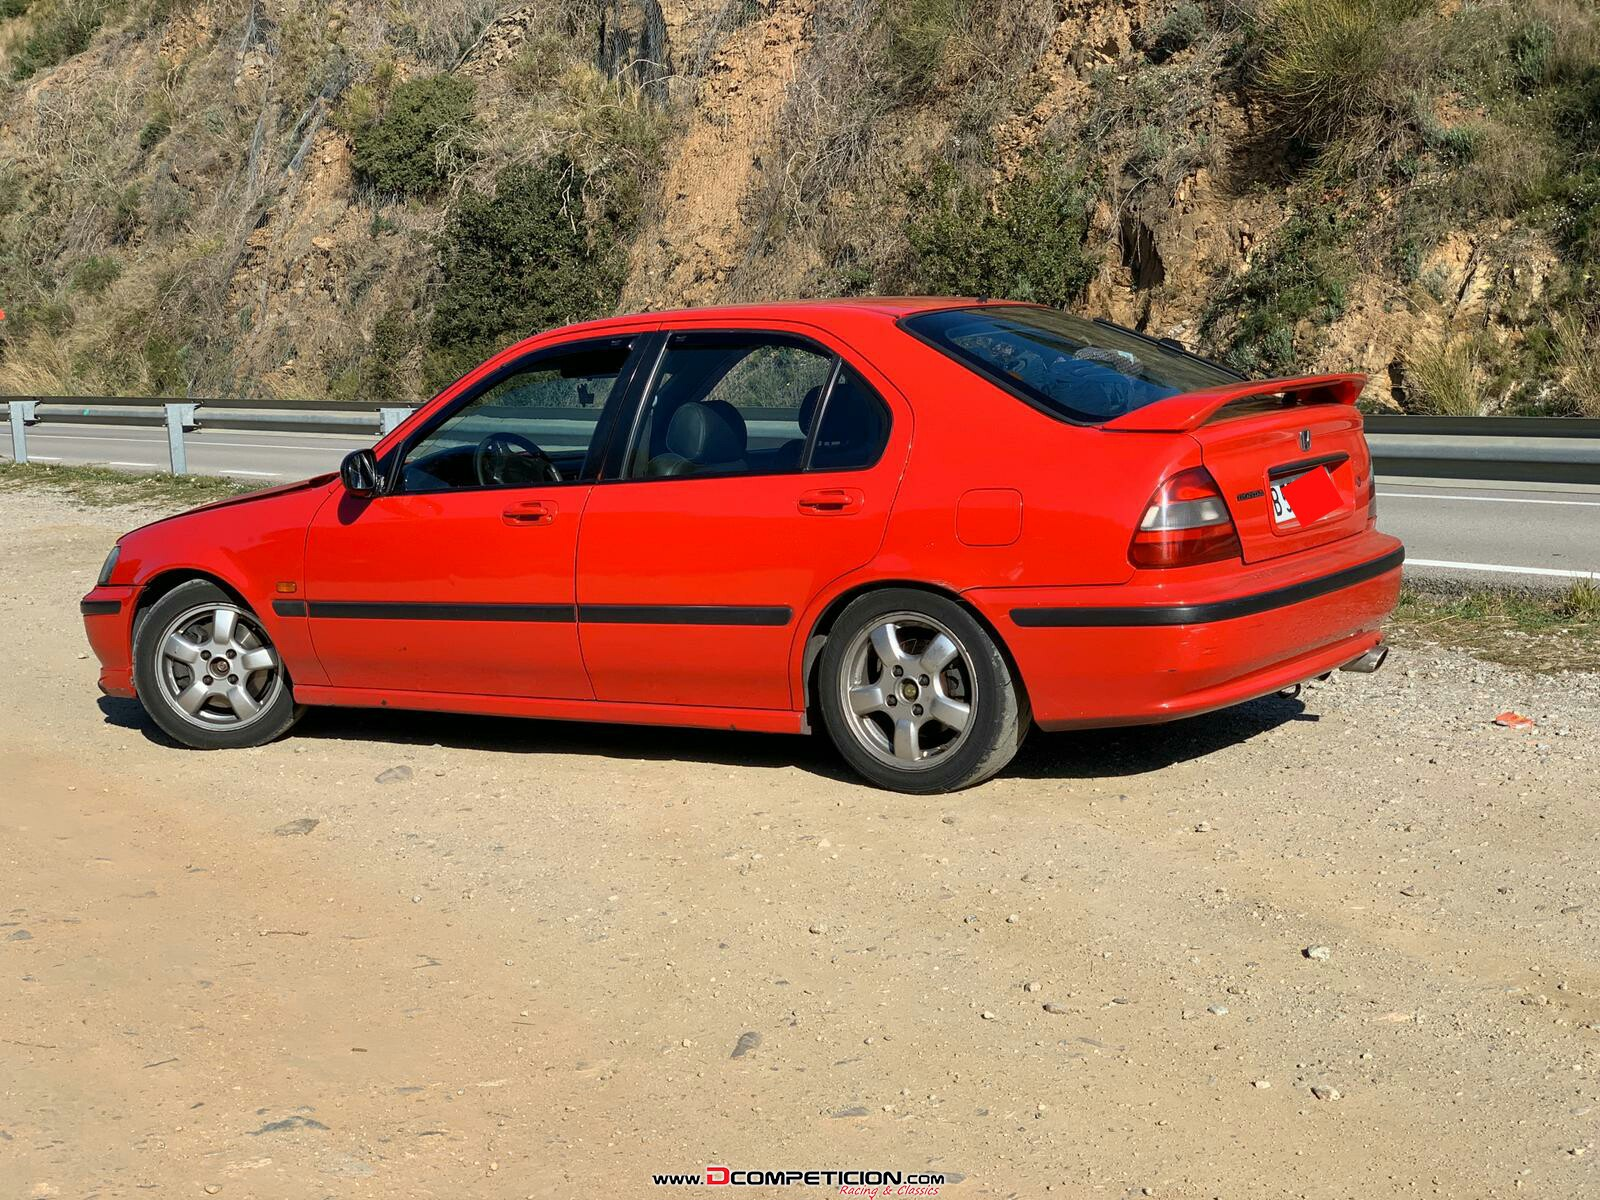 Foto5 Honda civic 1.8 mb6